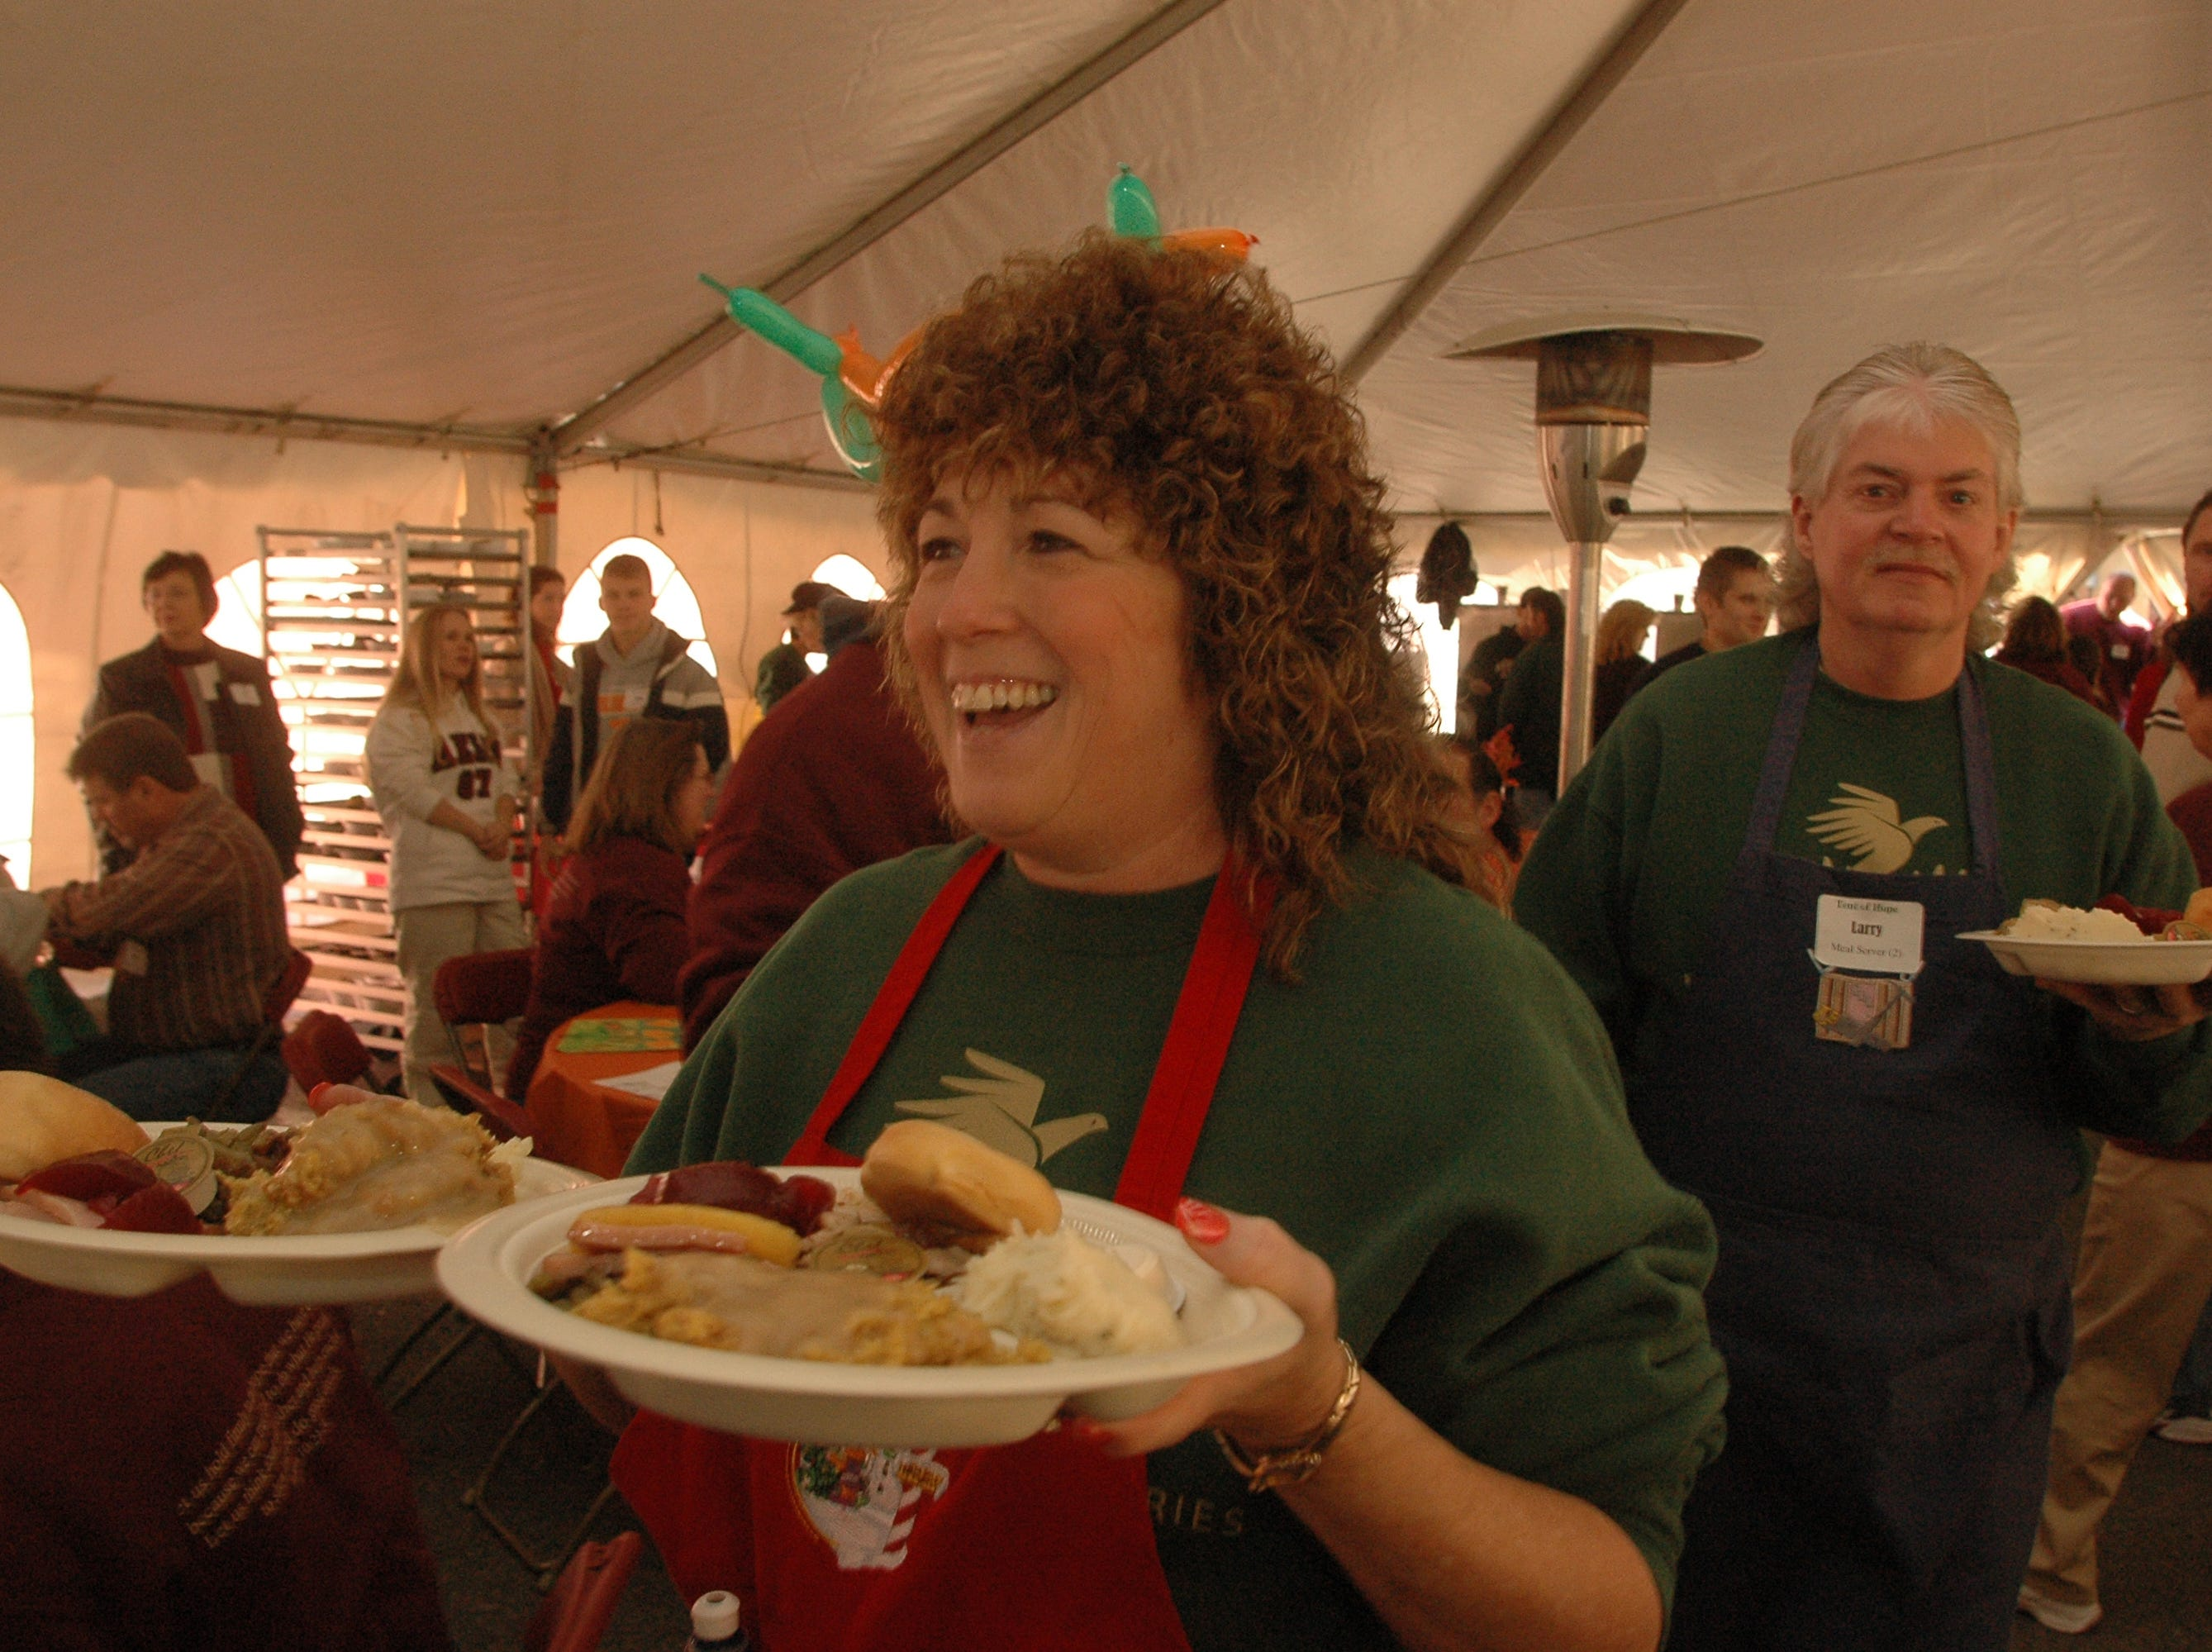 """Volunteers Sharon Bender (left) and Larry Cotter both of Clinton spent part of their Thanksgiving Day help serve meals at the annual Knox Area Rescue Ministries """"Tent of Hope."""" Dozens of Volunteers gathered at  Knoxville Area Rescue Ministries on Thanksgiving Day to help feed the homeless and less fortunate in Knoxville.   November 24, 2005"""